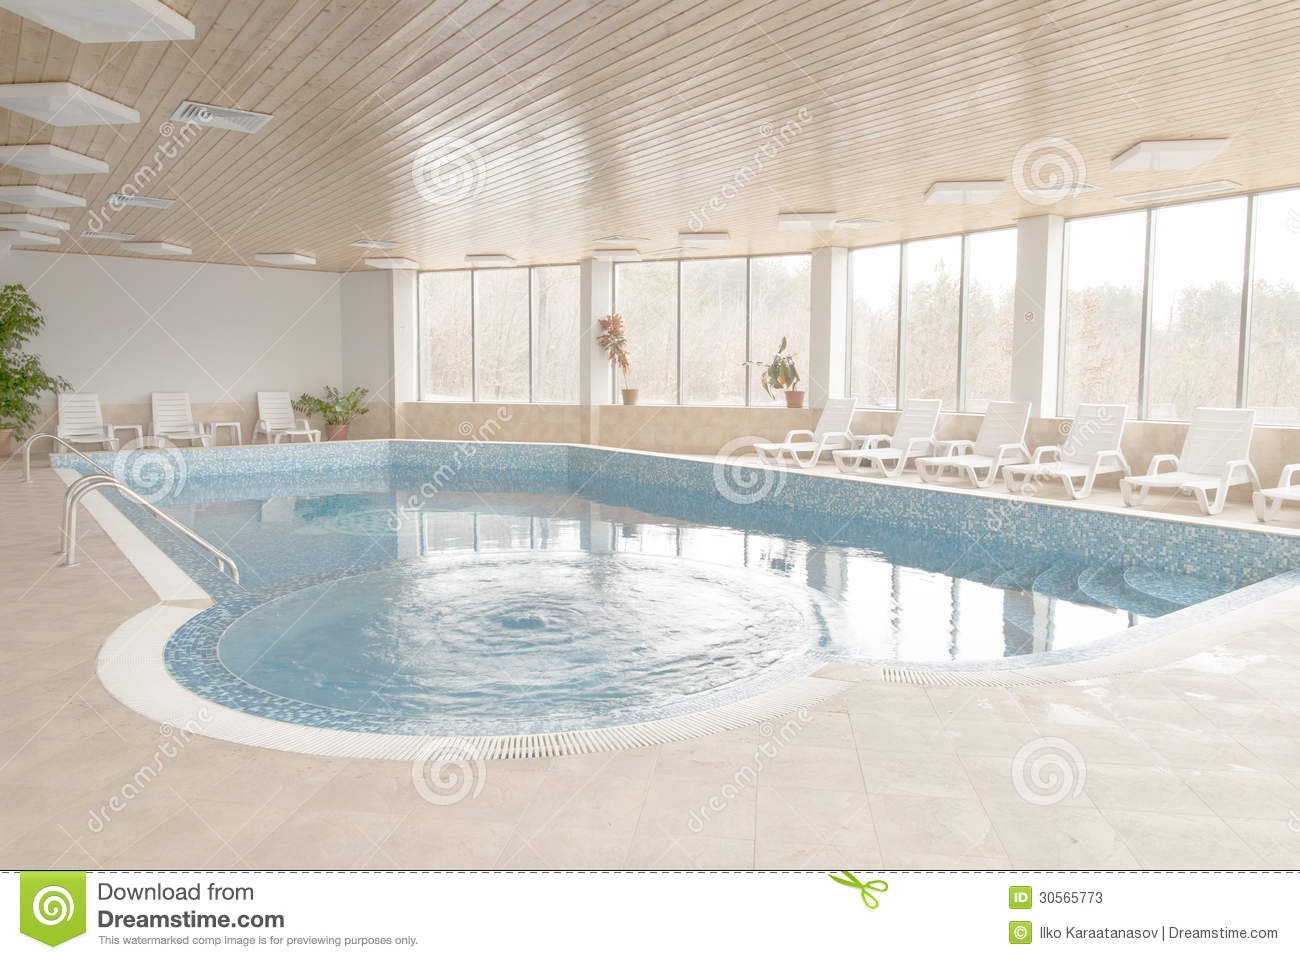 Sample Business Plan on Swimming Pool and Spa Business Plan